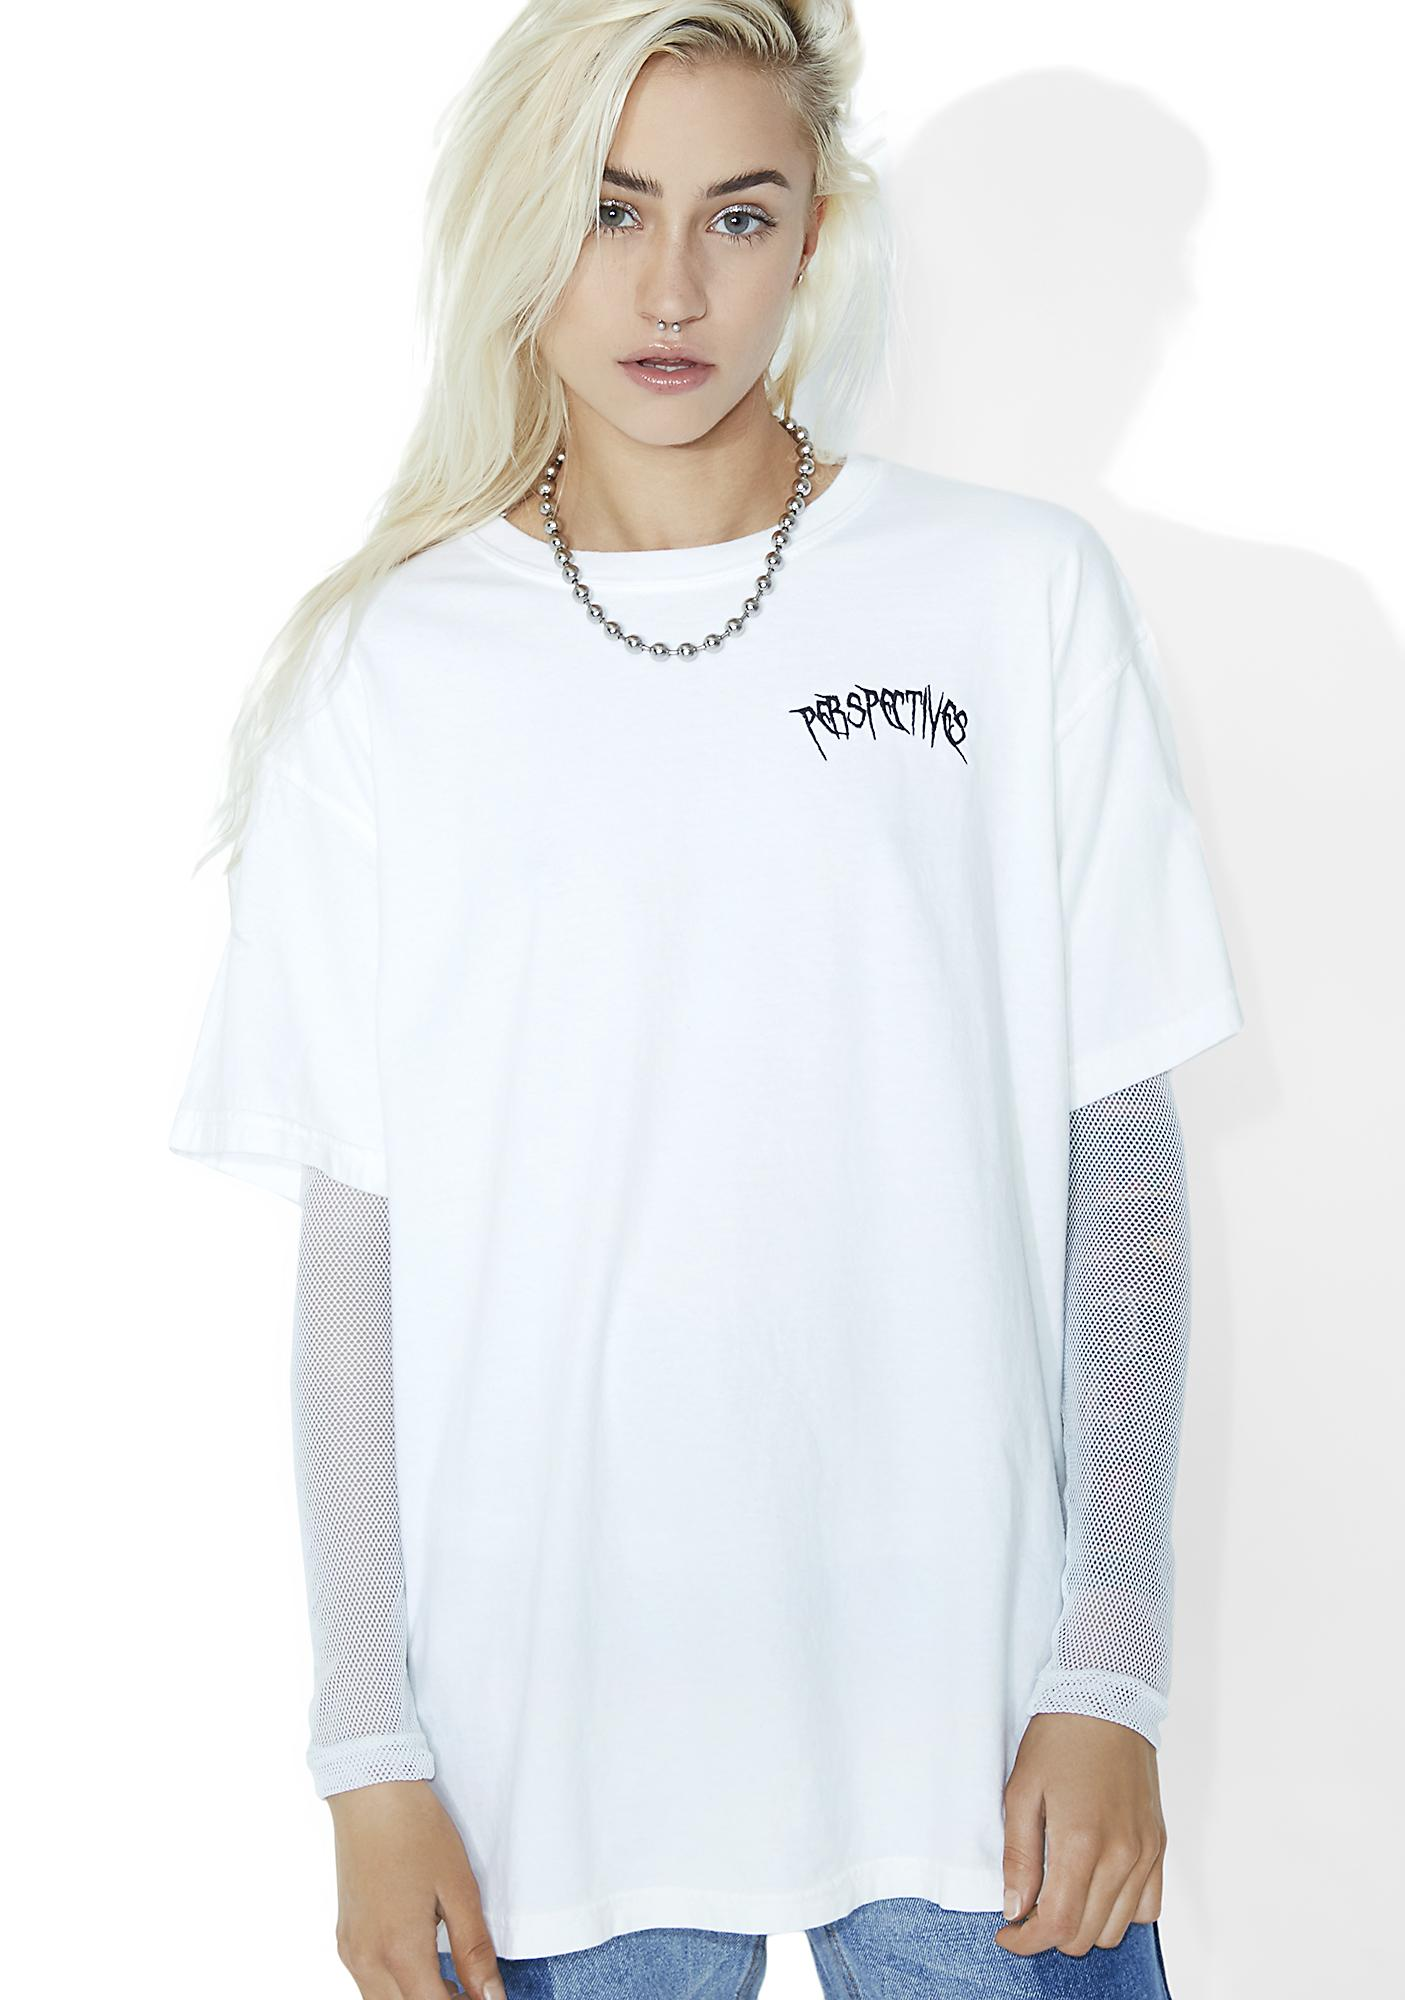 Perspectives Global Trashed Tee